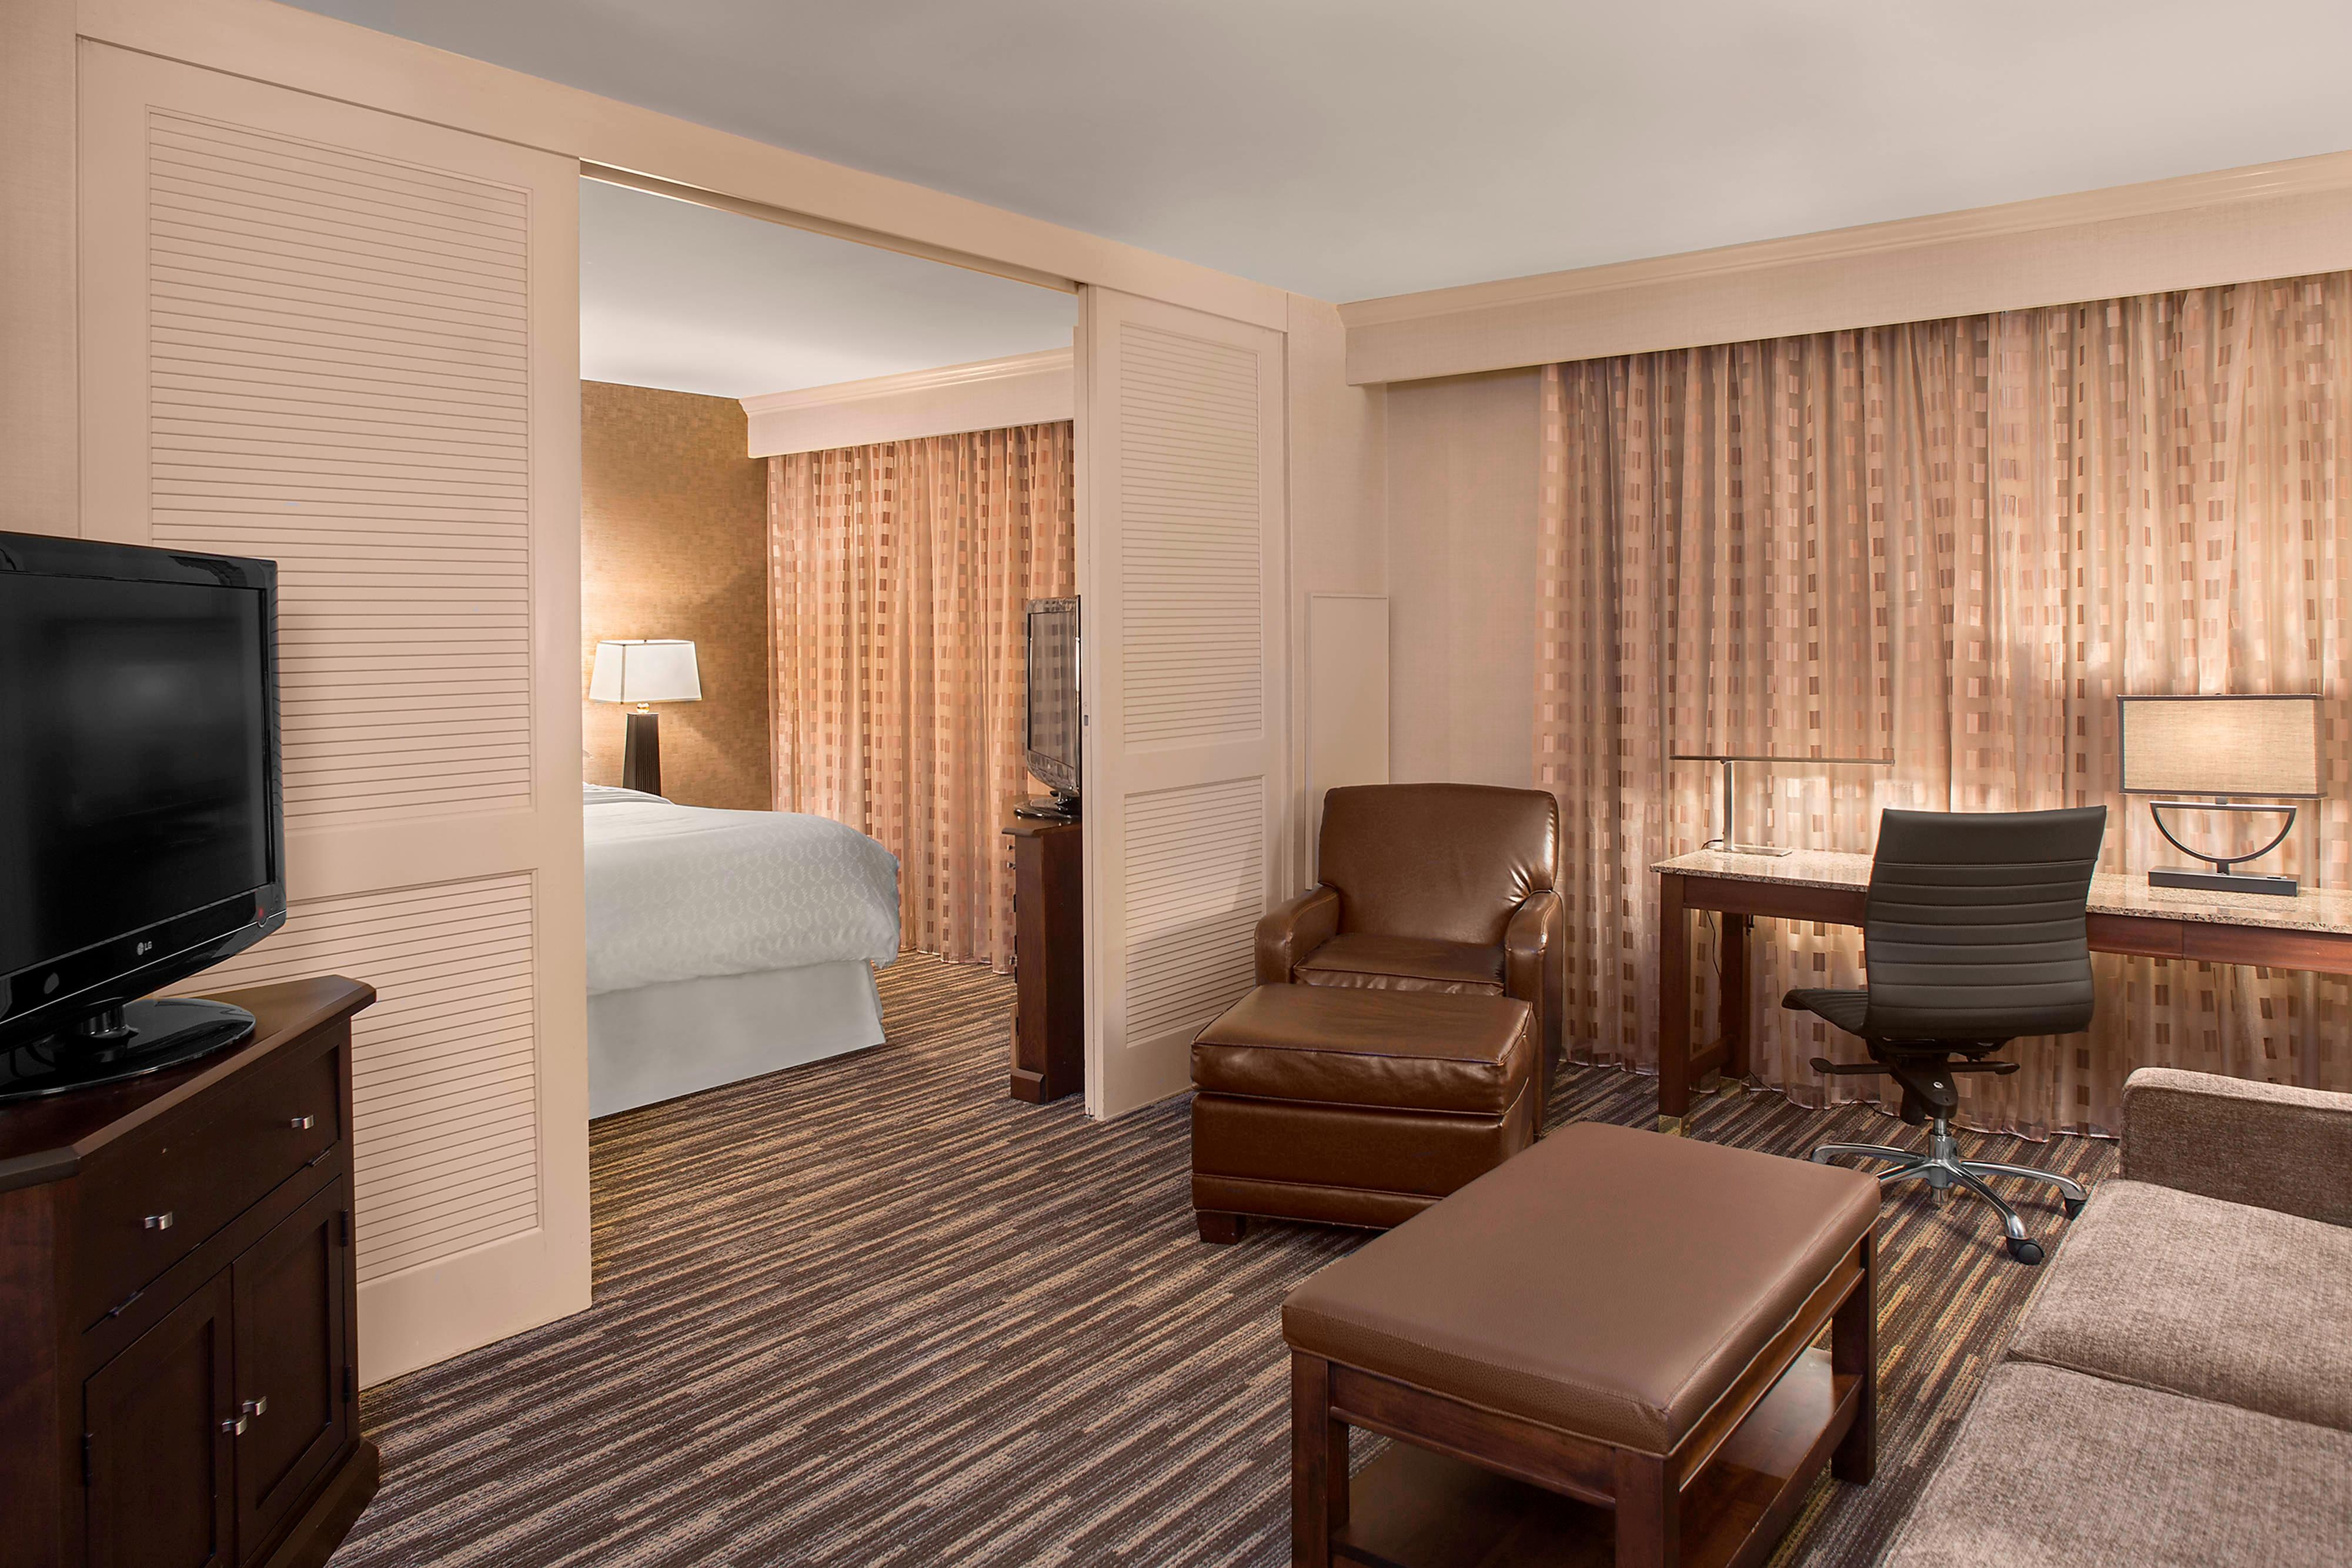 Sensational Rooms And Hotel Suites Akron Ohio Sheraton Suites Akron Short Links Chair Design For Home Short Linksinfo